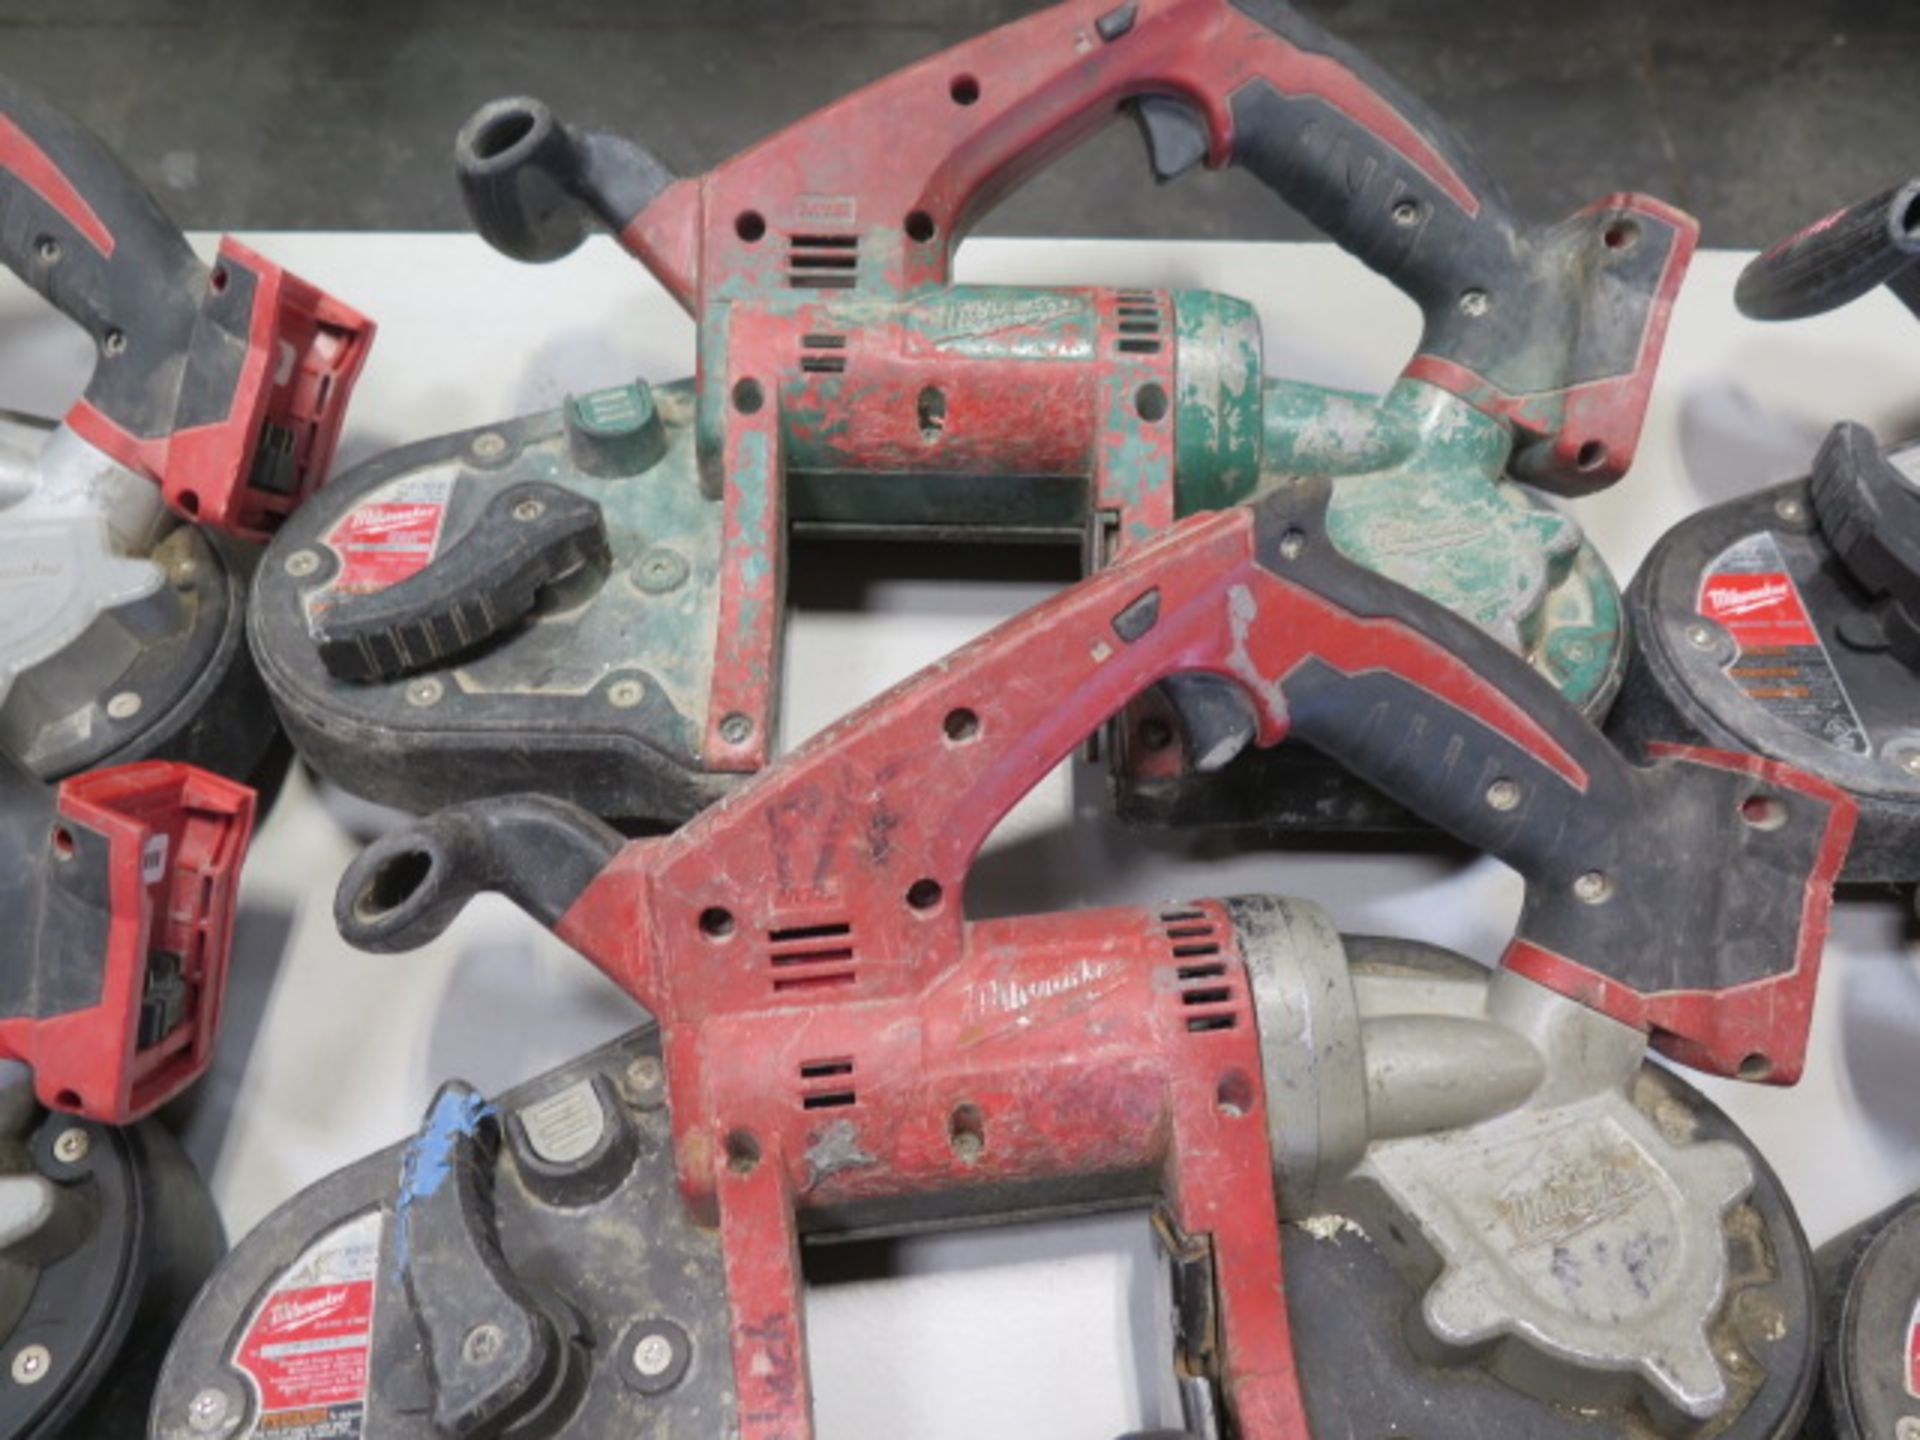 Milwaukee 18 Volt Compact Portable Band Saws (4) (SOLD AS-IS - NO WARRANTY) - Image 6 of 7